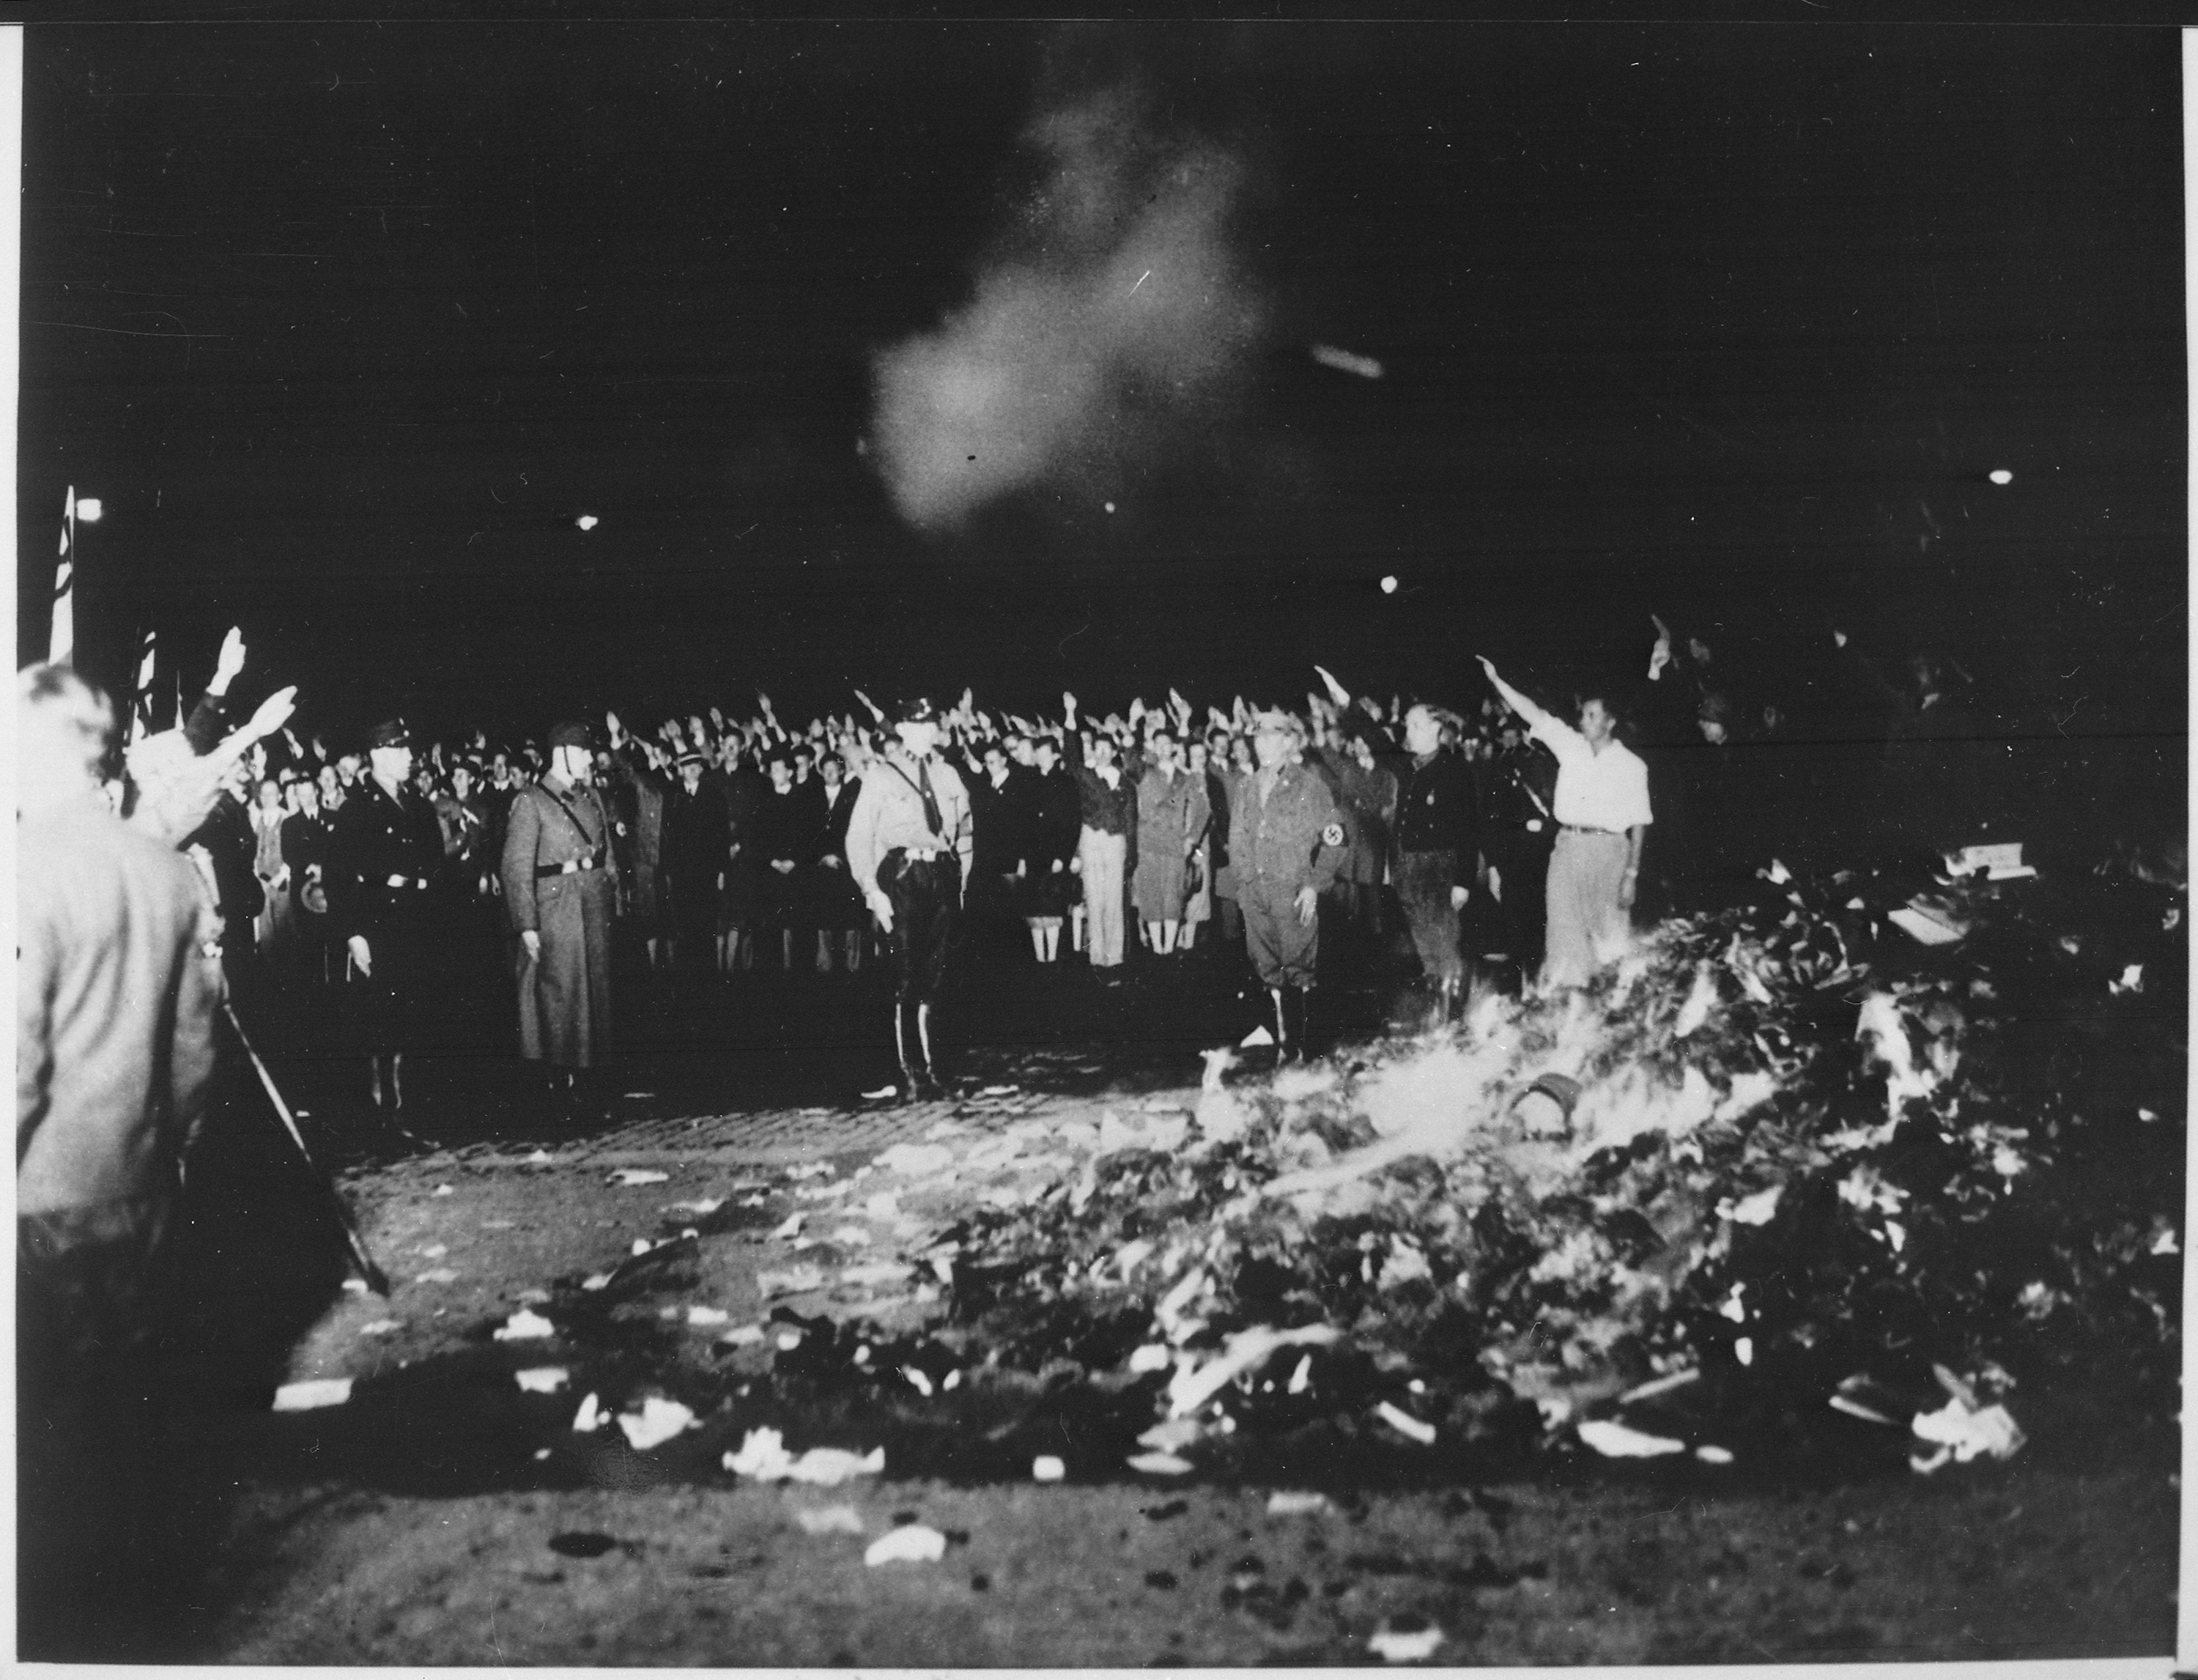 A Nazi book-burning